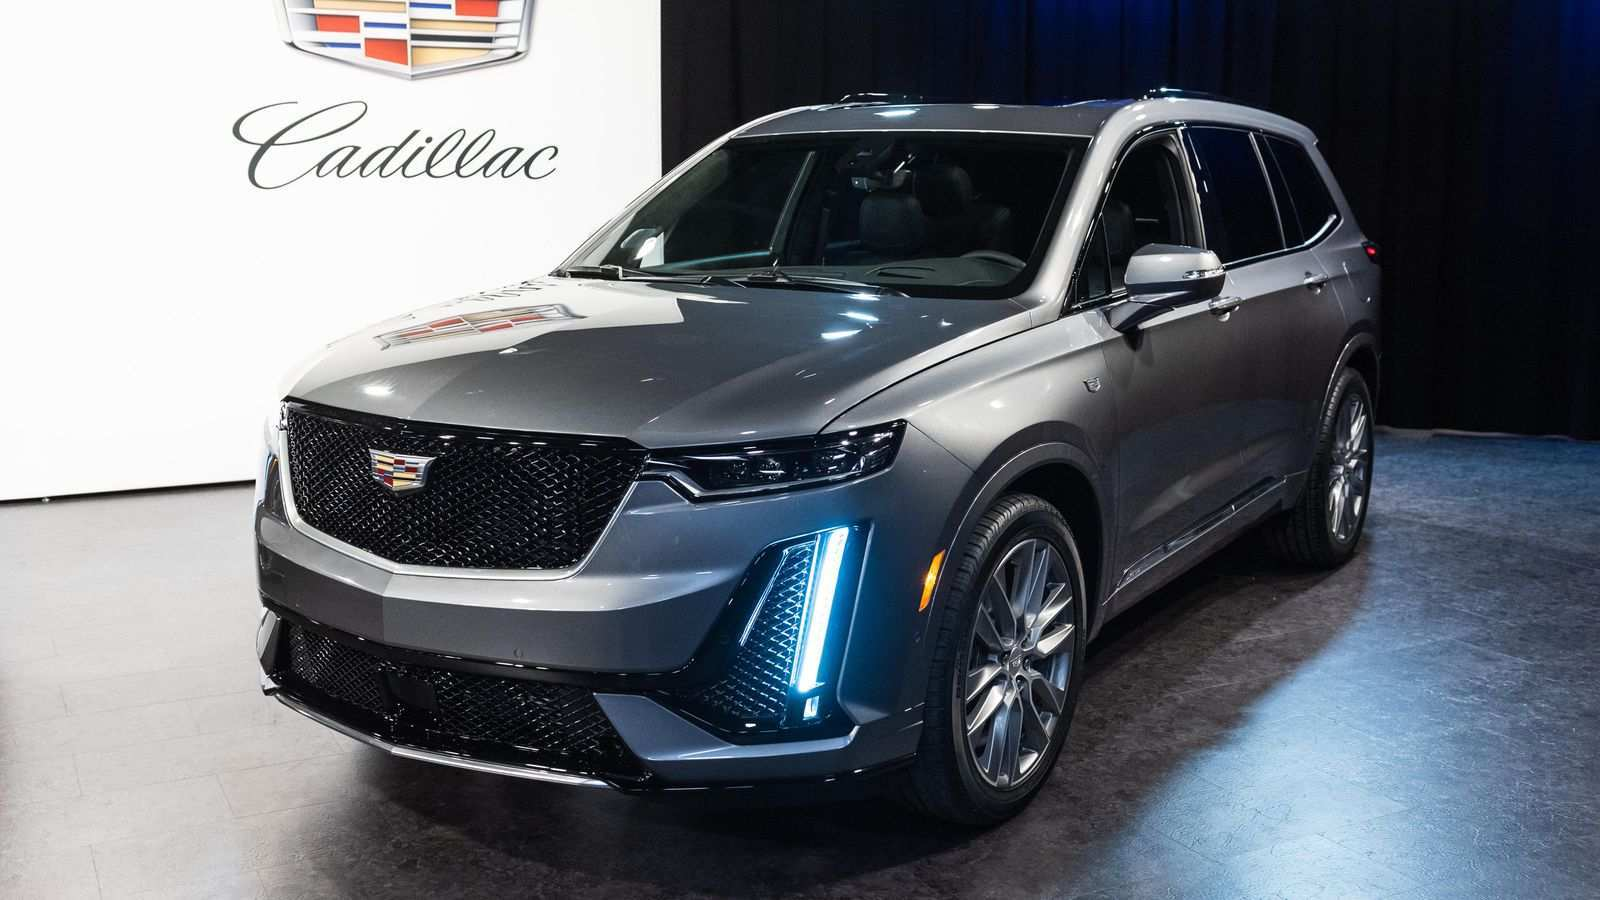 77 All New Cadillac Xt6 2020 Review Pictures